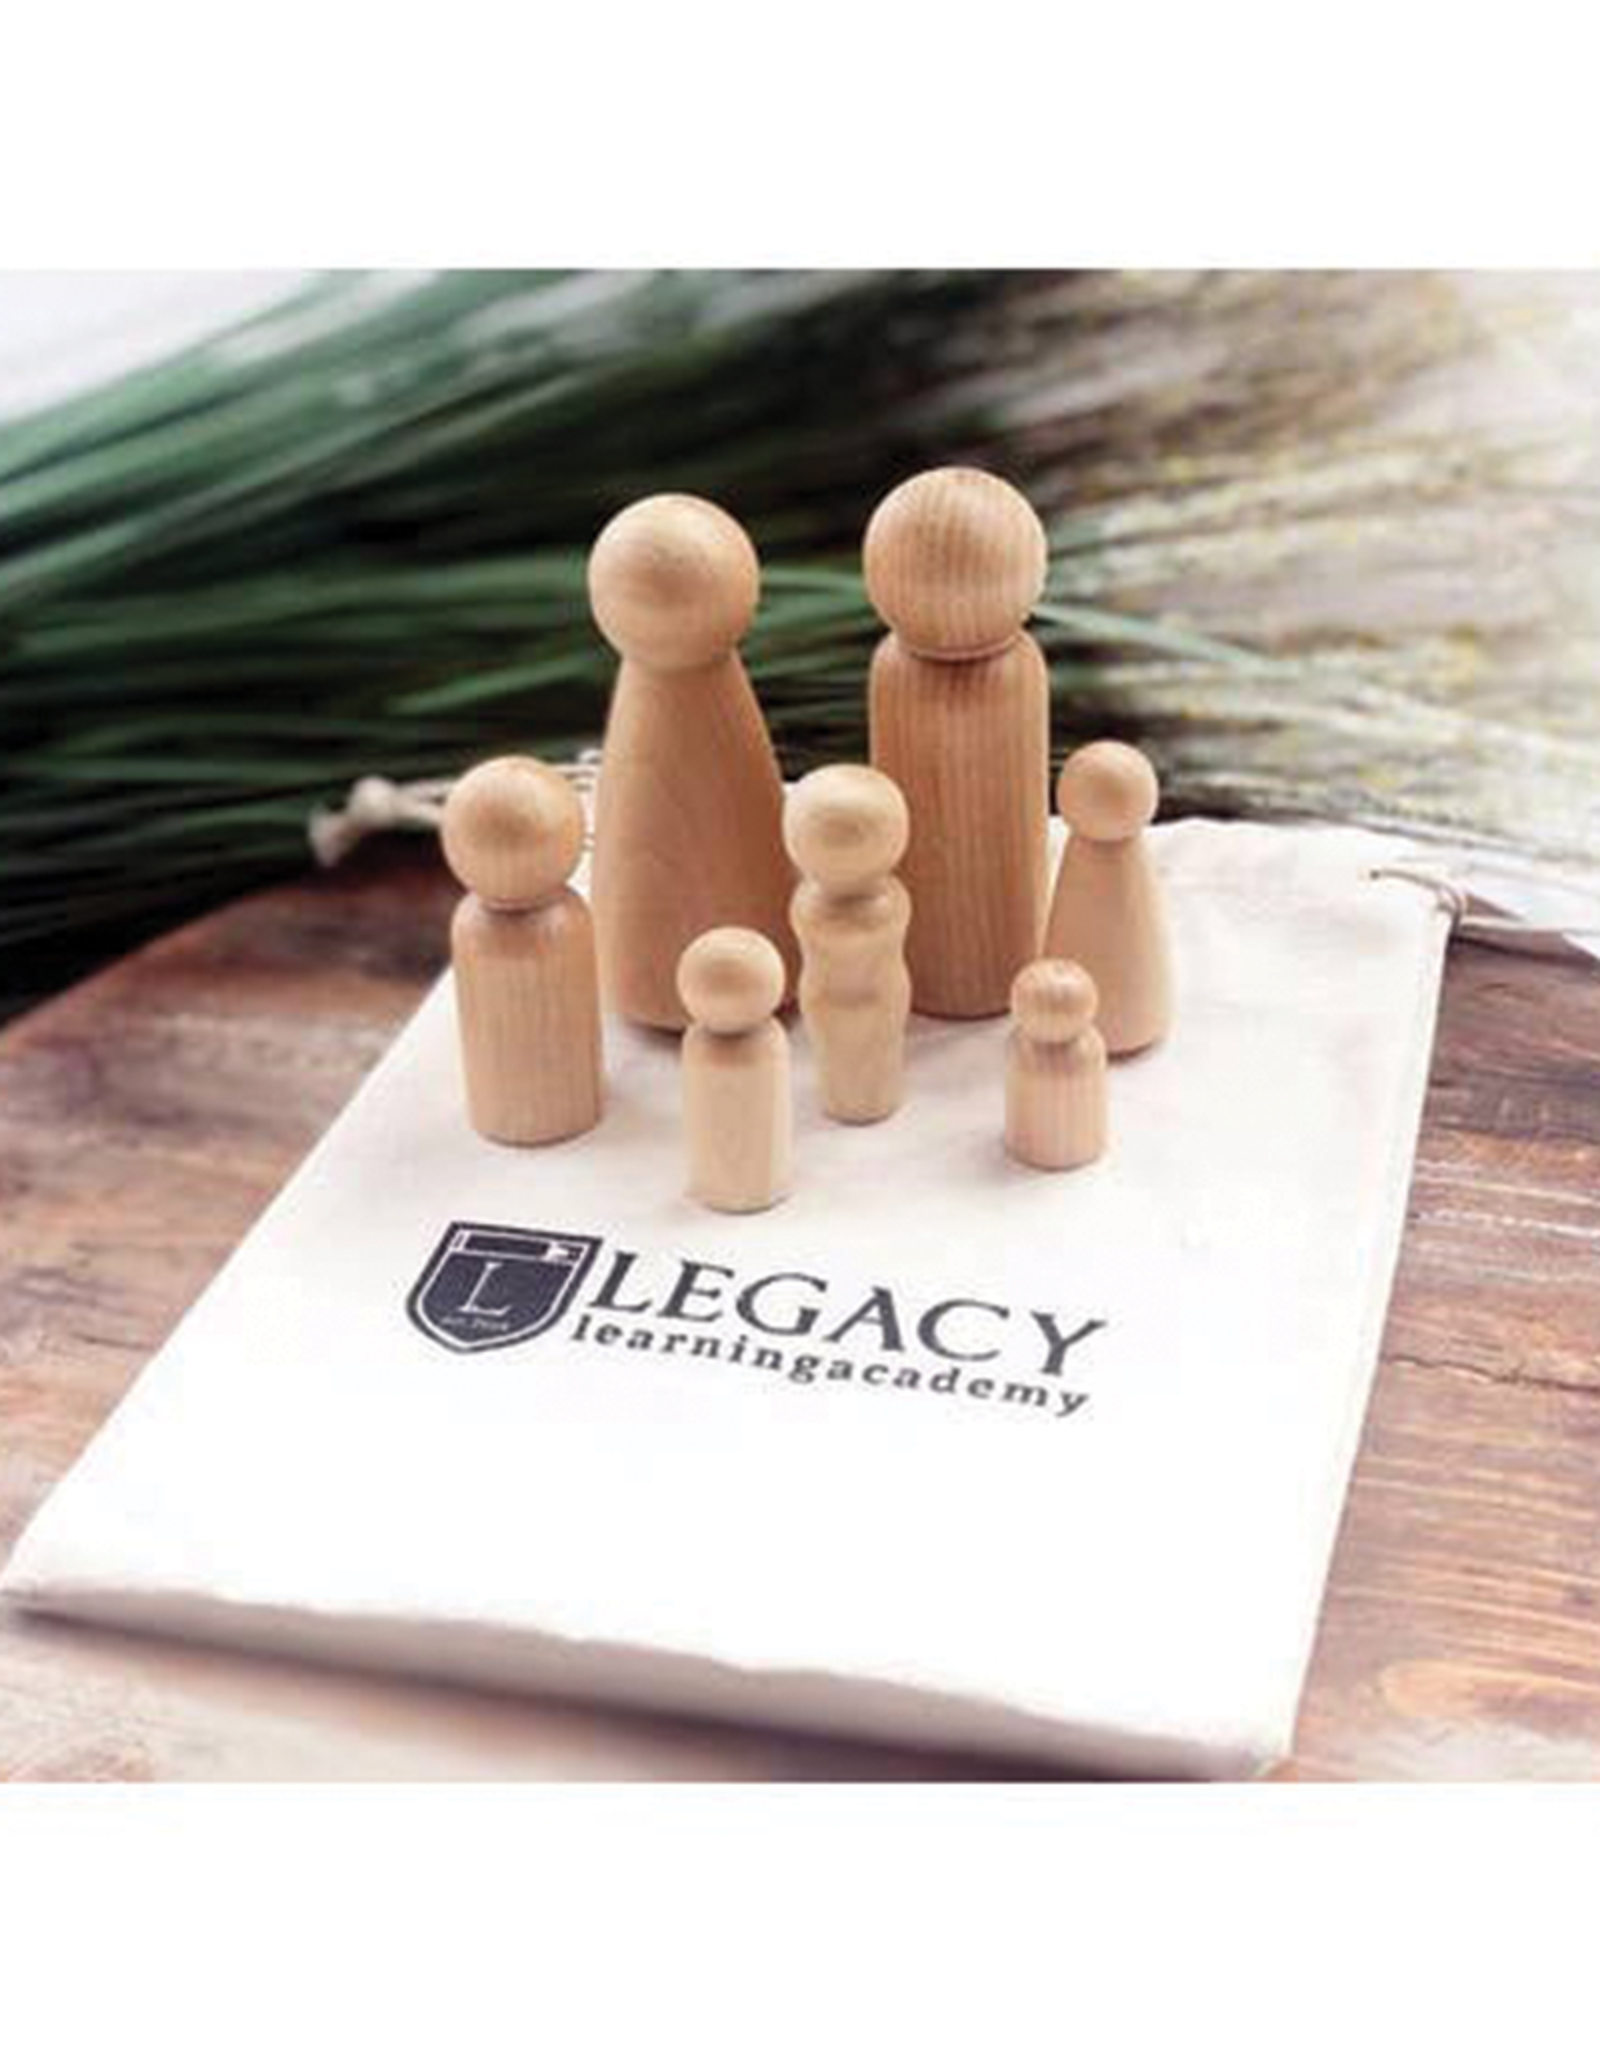 Legacy Learning Academy Natural Wood Peg Family